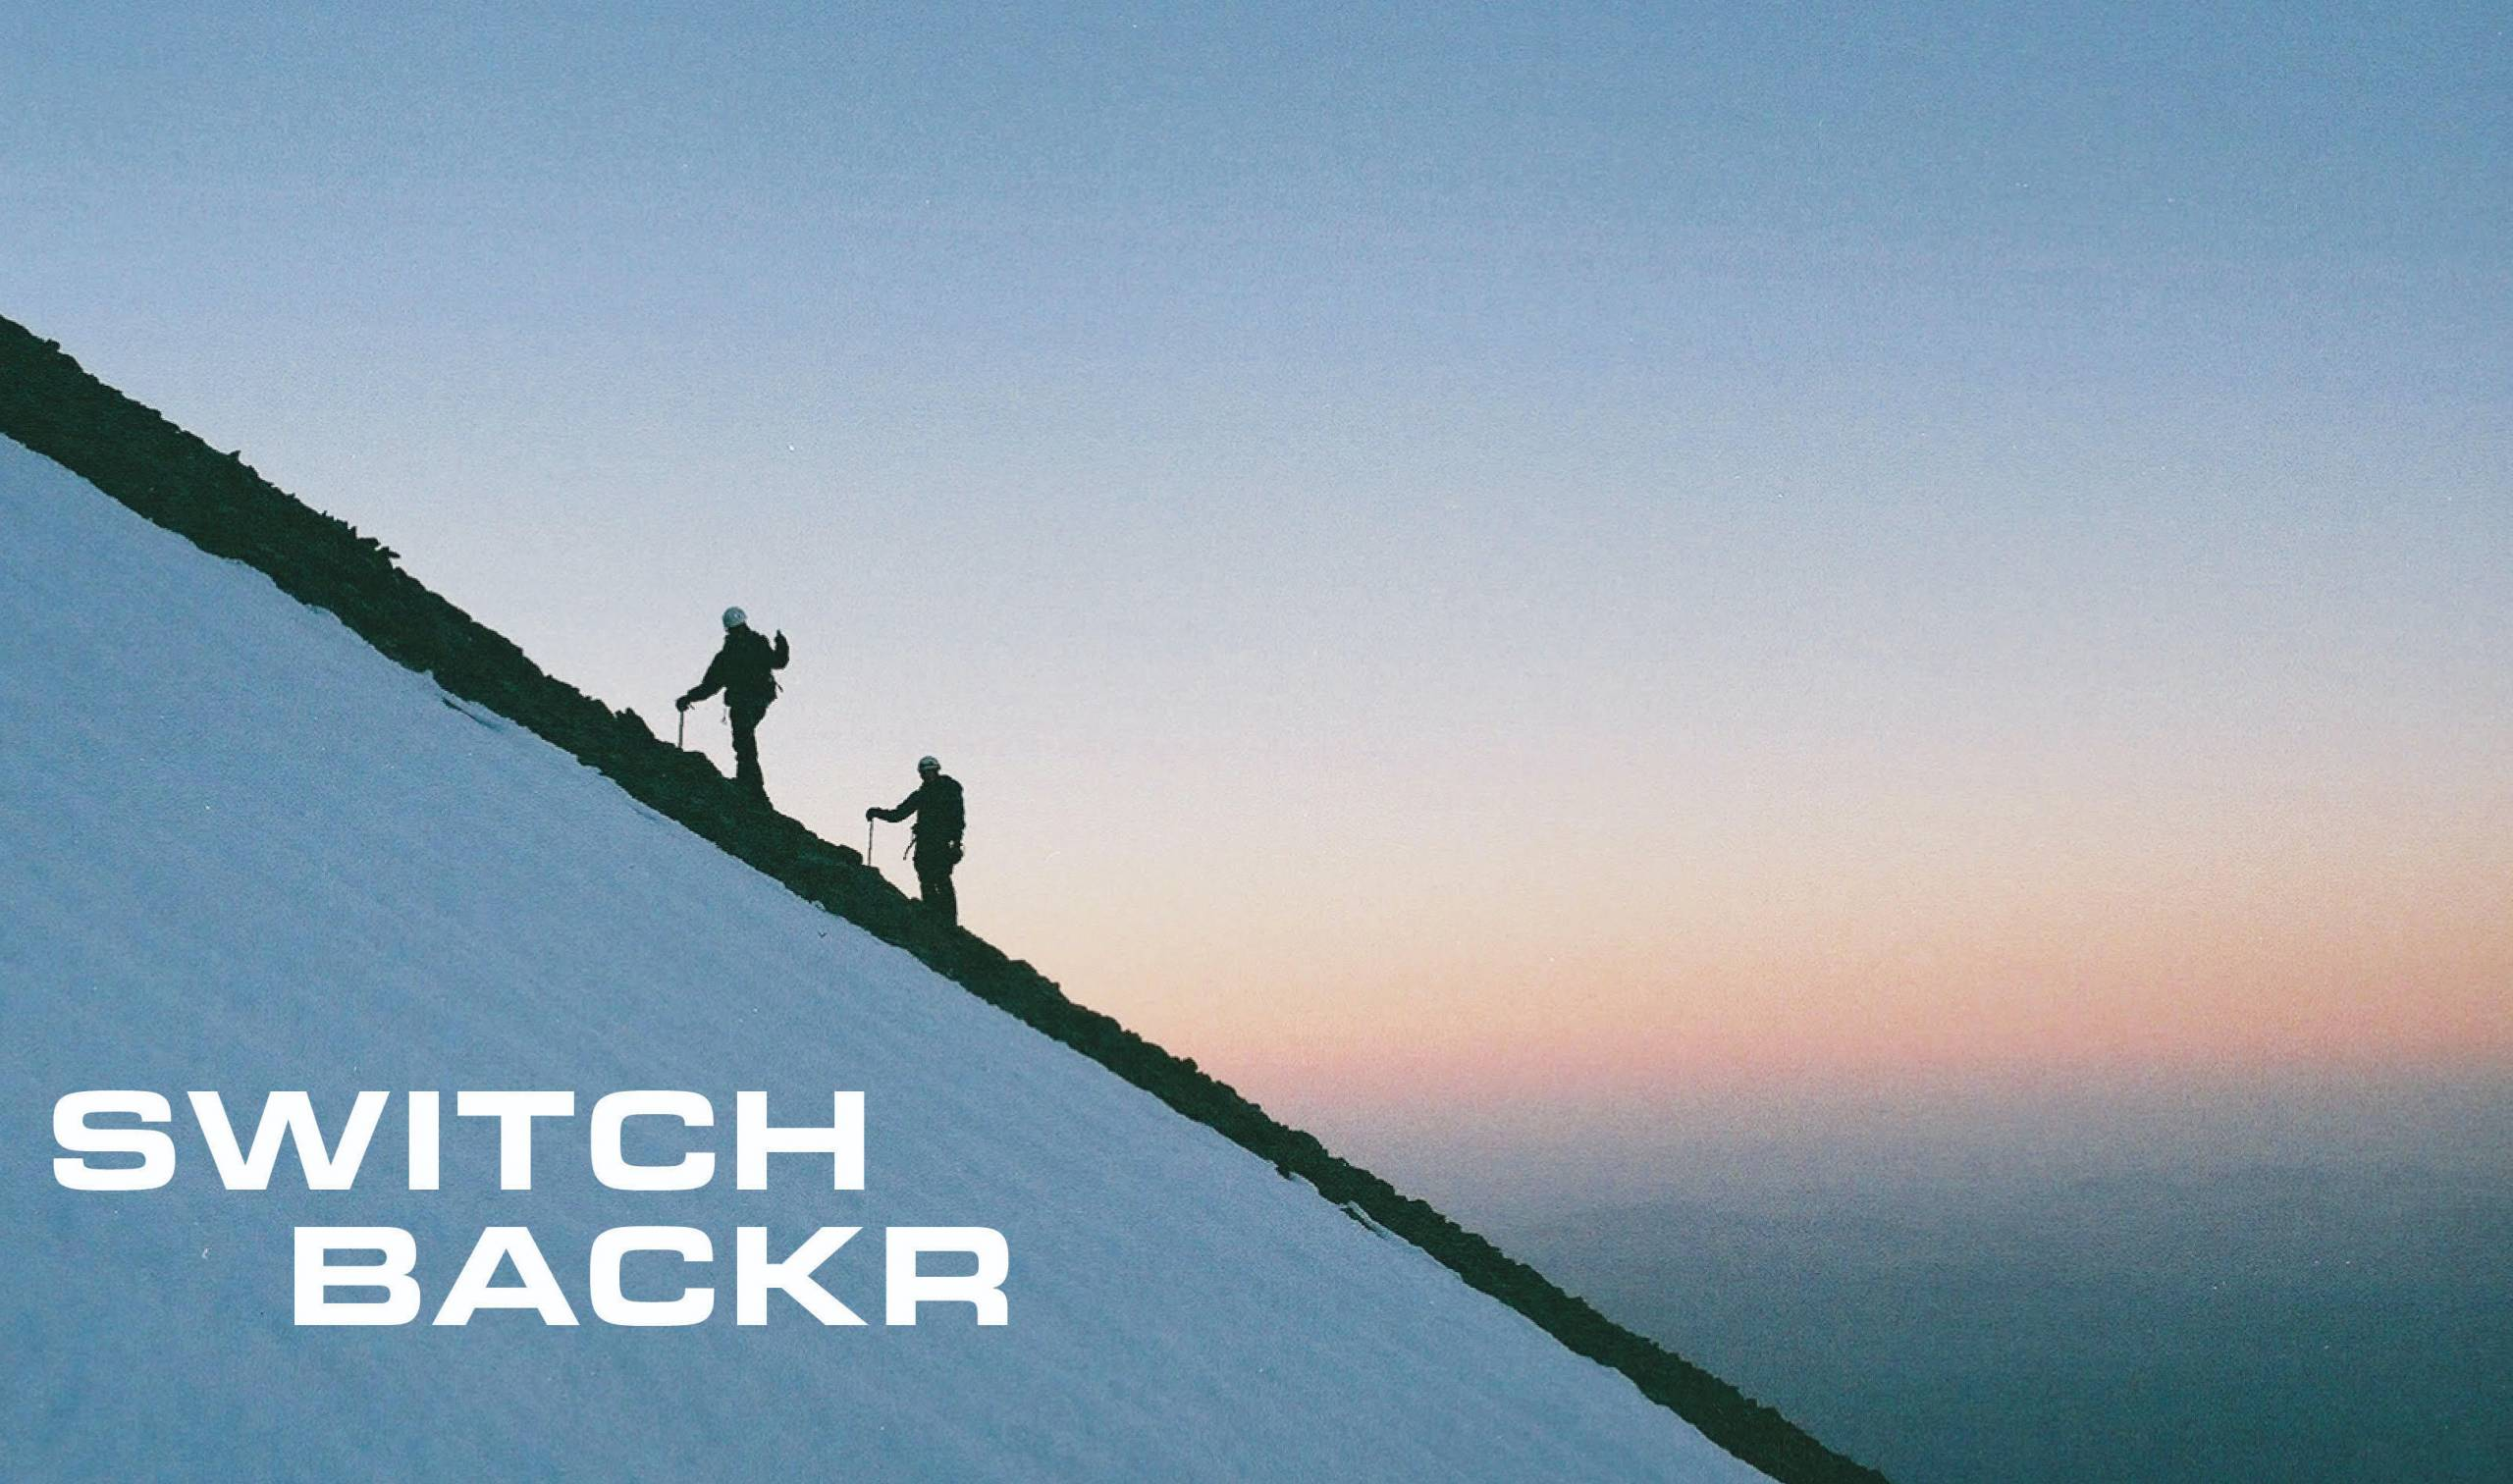 two hikers on a steep slope at sunset, with switchbackr logo in white text